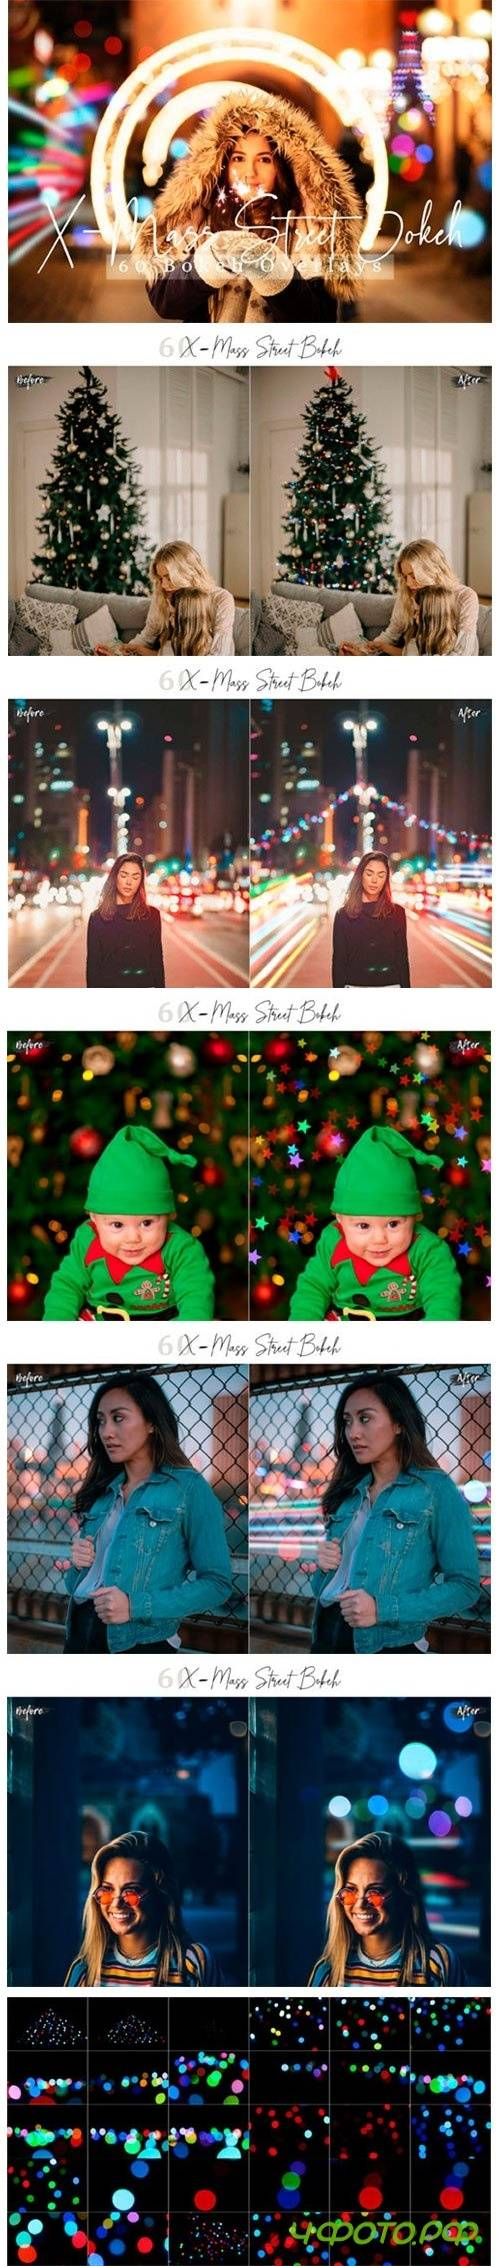 60 X-Mass Street Bokeh lights Effect Photo Overlay - 406213